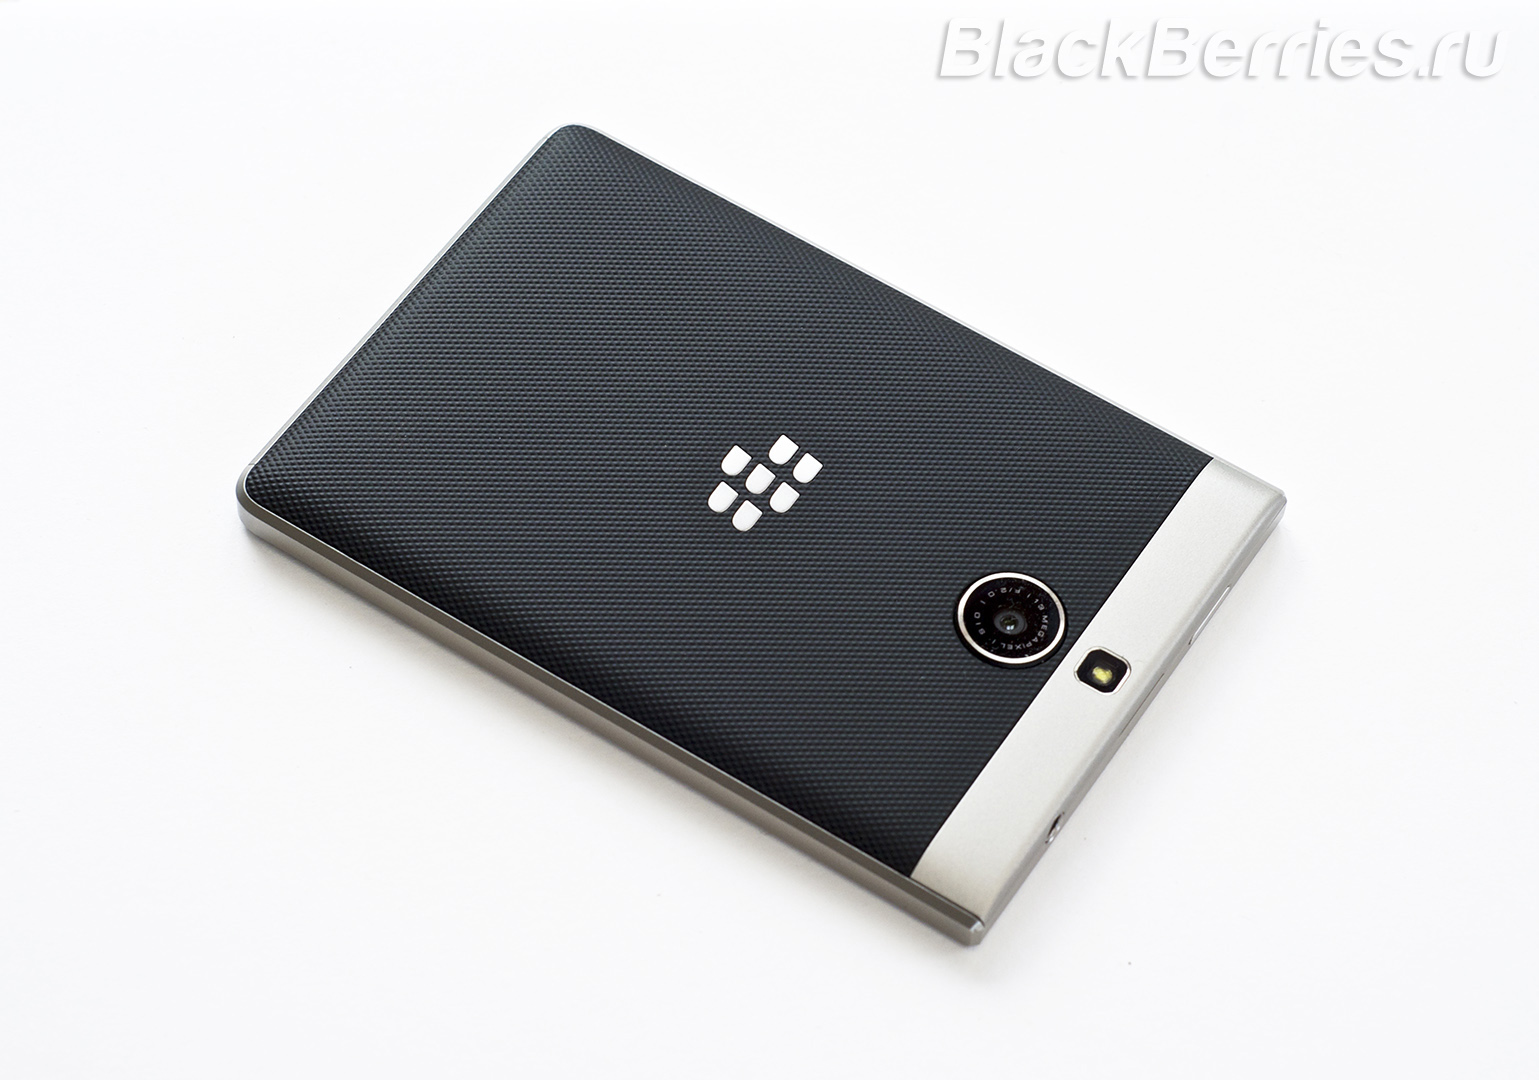 BlackBerry-Passport-Silver-Edition-Review-40